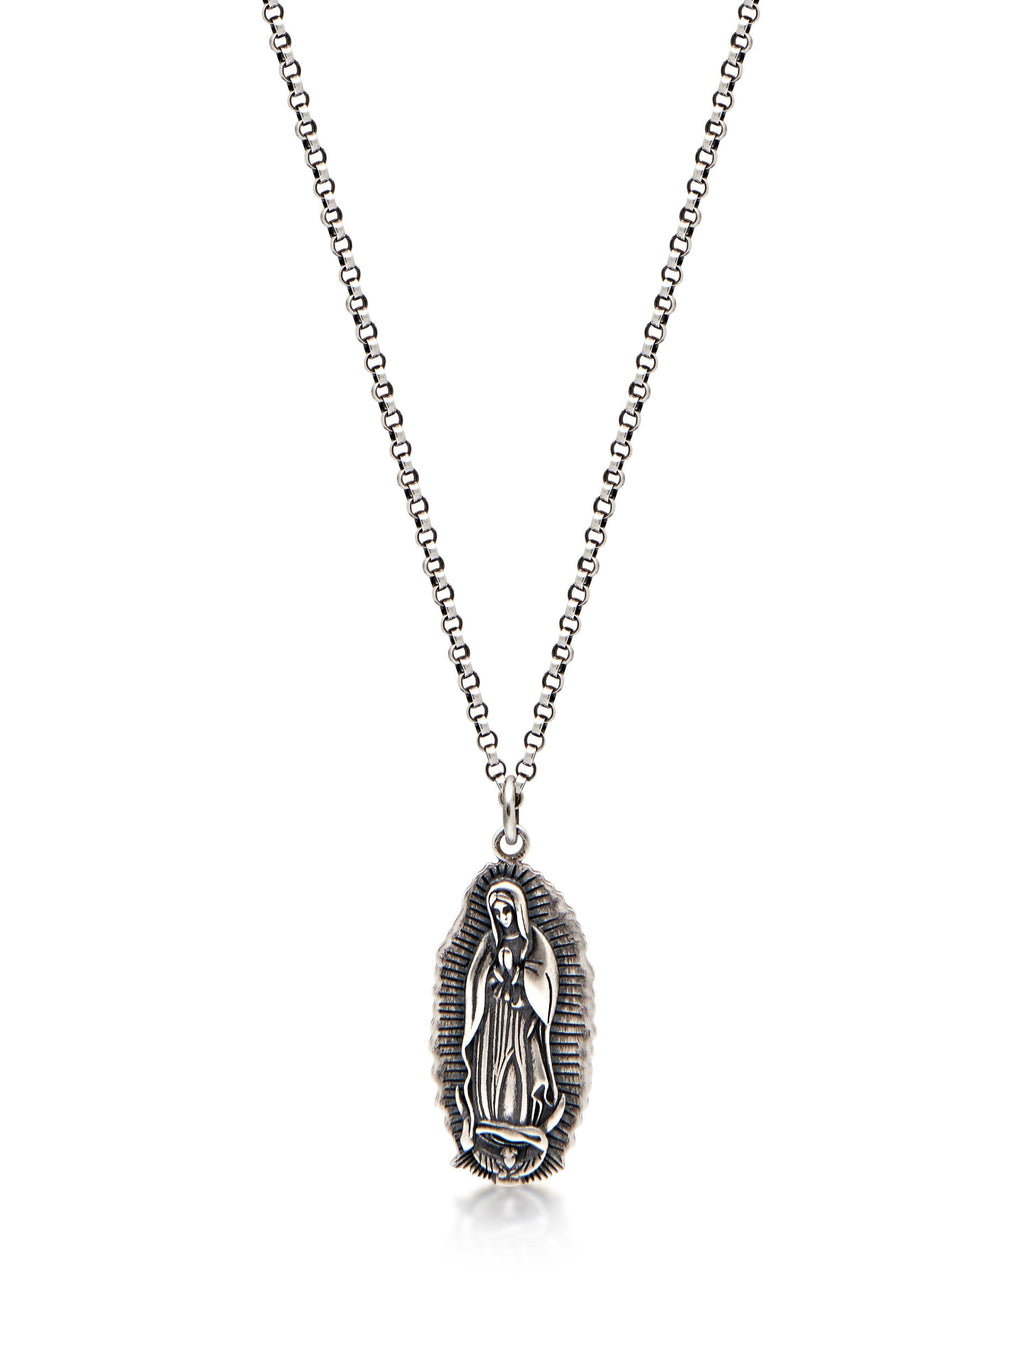 Men's Silver Necklace with Our Lady of Guadalupe Pendant